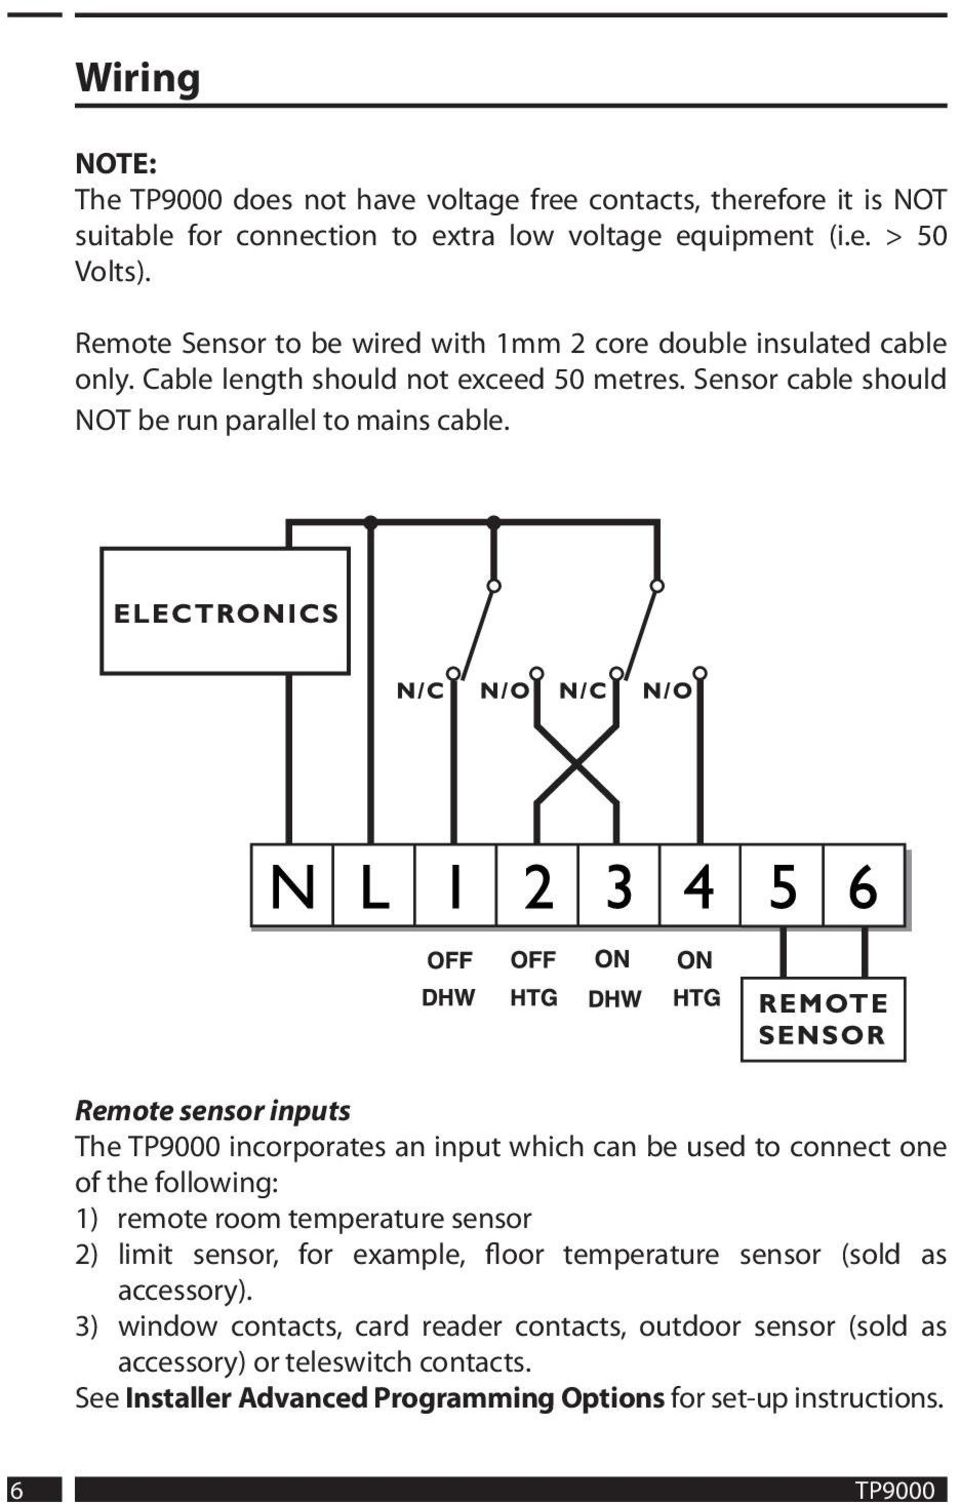 Remote sensor inputs The TP9000 incorporates an input which can be used to connect one of the following: 1) remote room temperature sensor 2) limit sensor, for example, floor